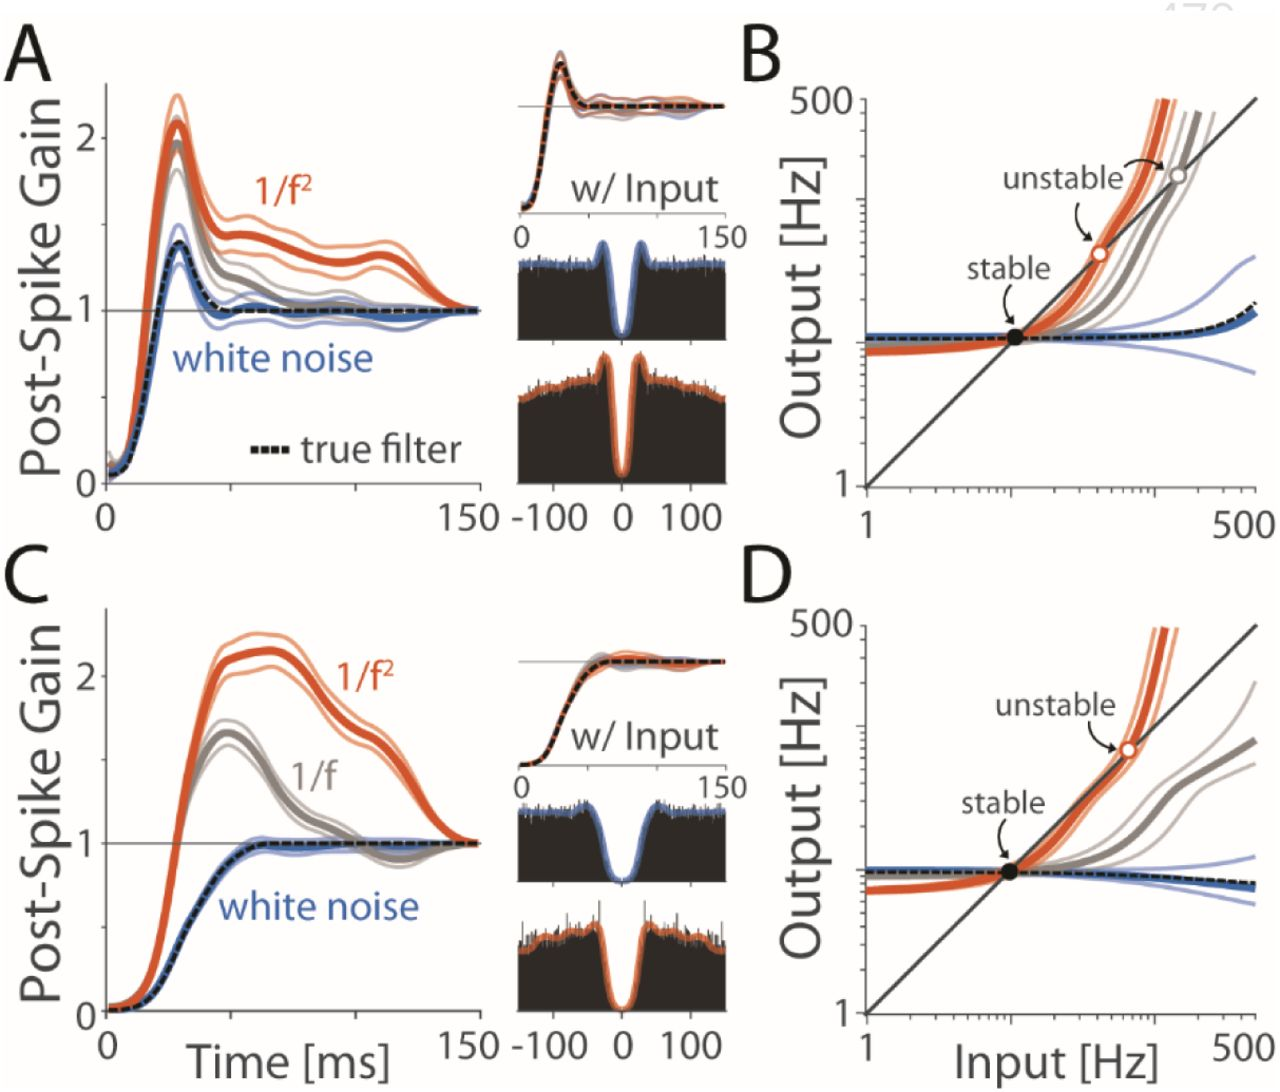 Omitted variable bias in GLMs of neural spiking activity